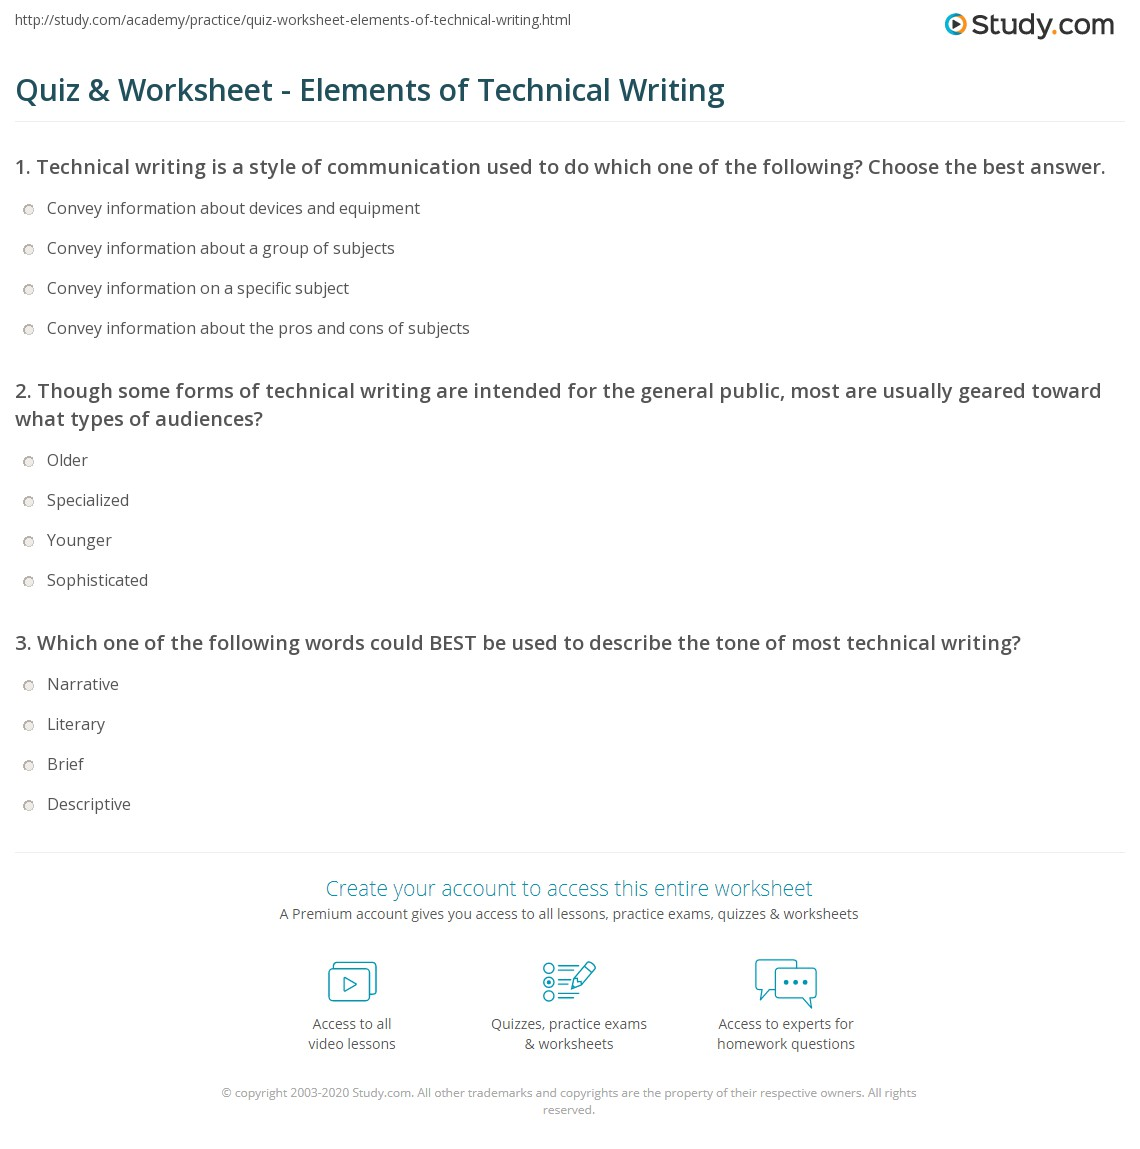 Quiz Worksheet Elements Of Technical Writing Study